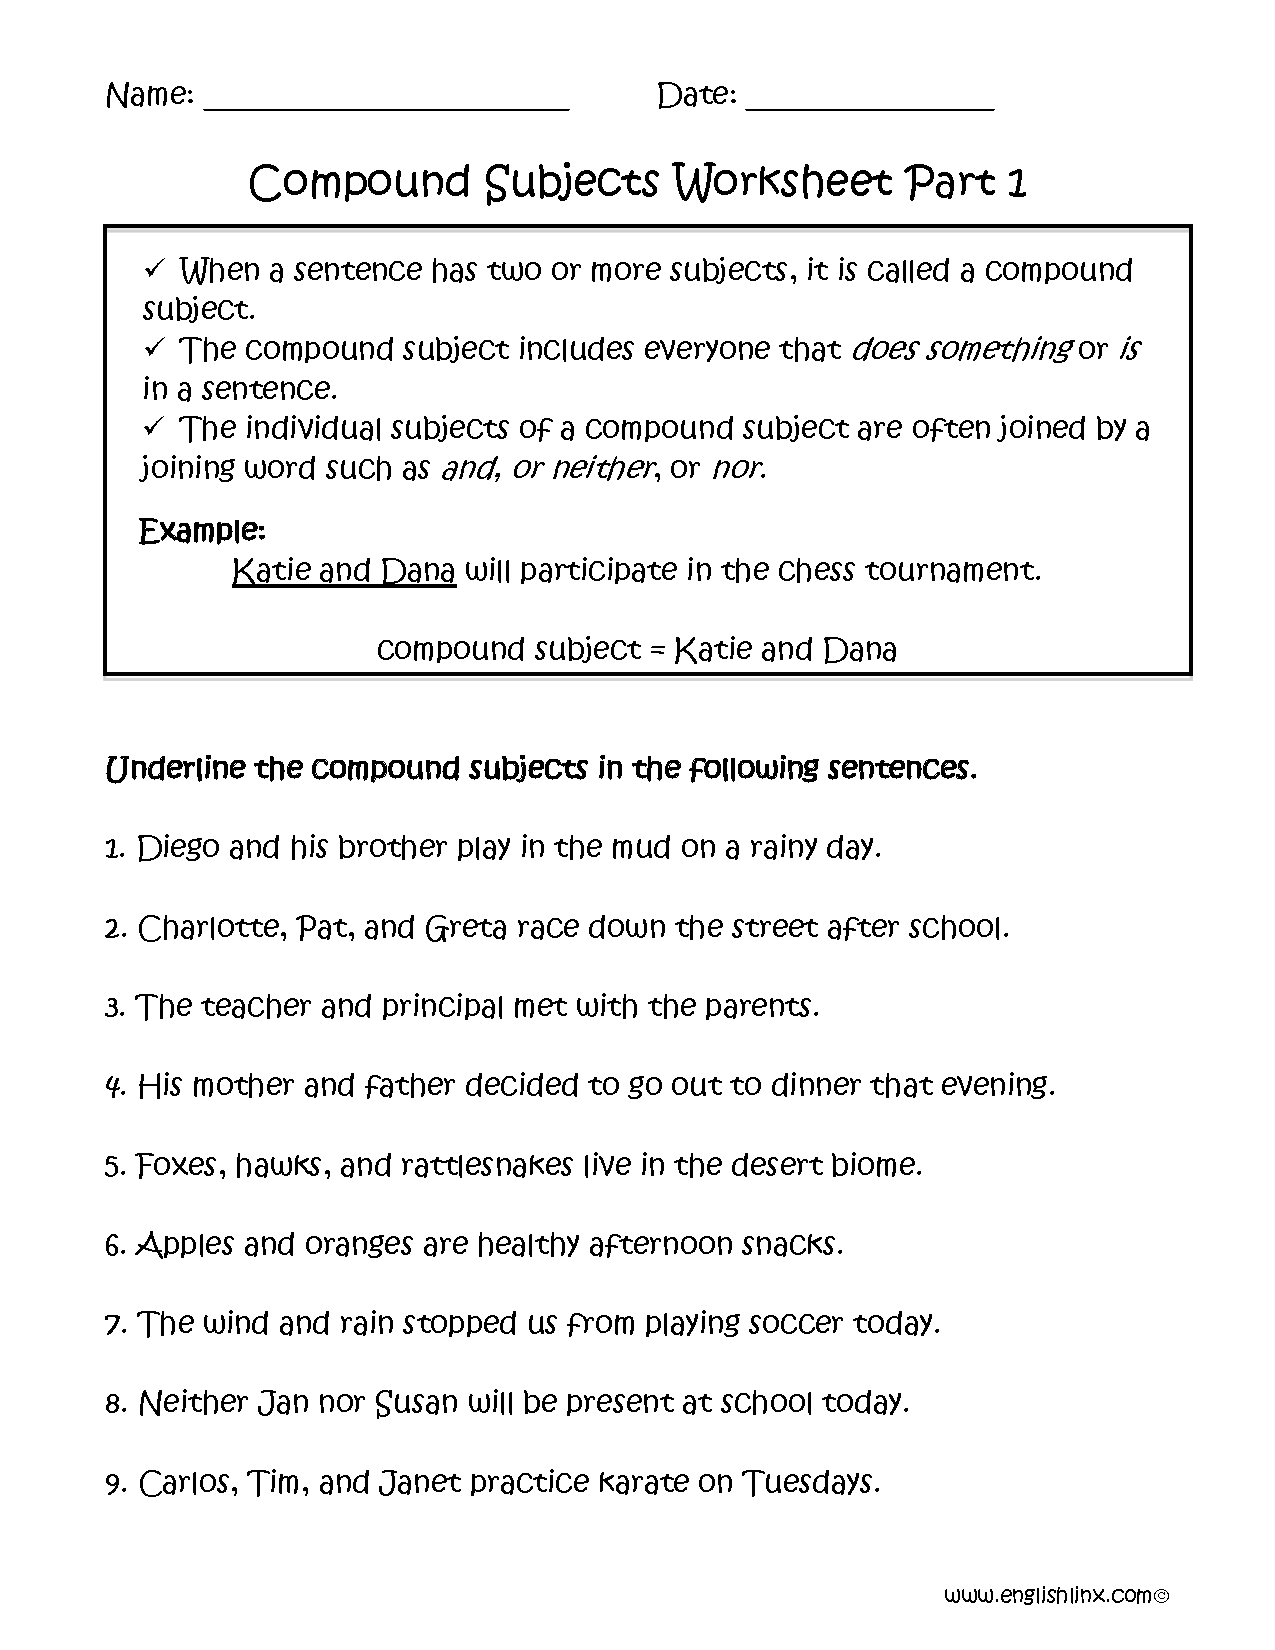 medium resolution of https://cute766.info/compound-subject-worksheet-part-1-subject-and-predicate/